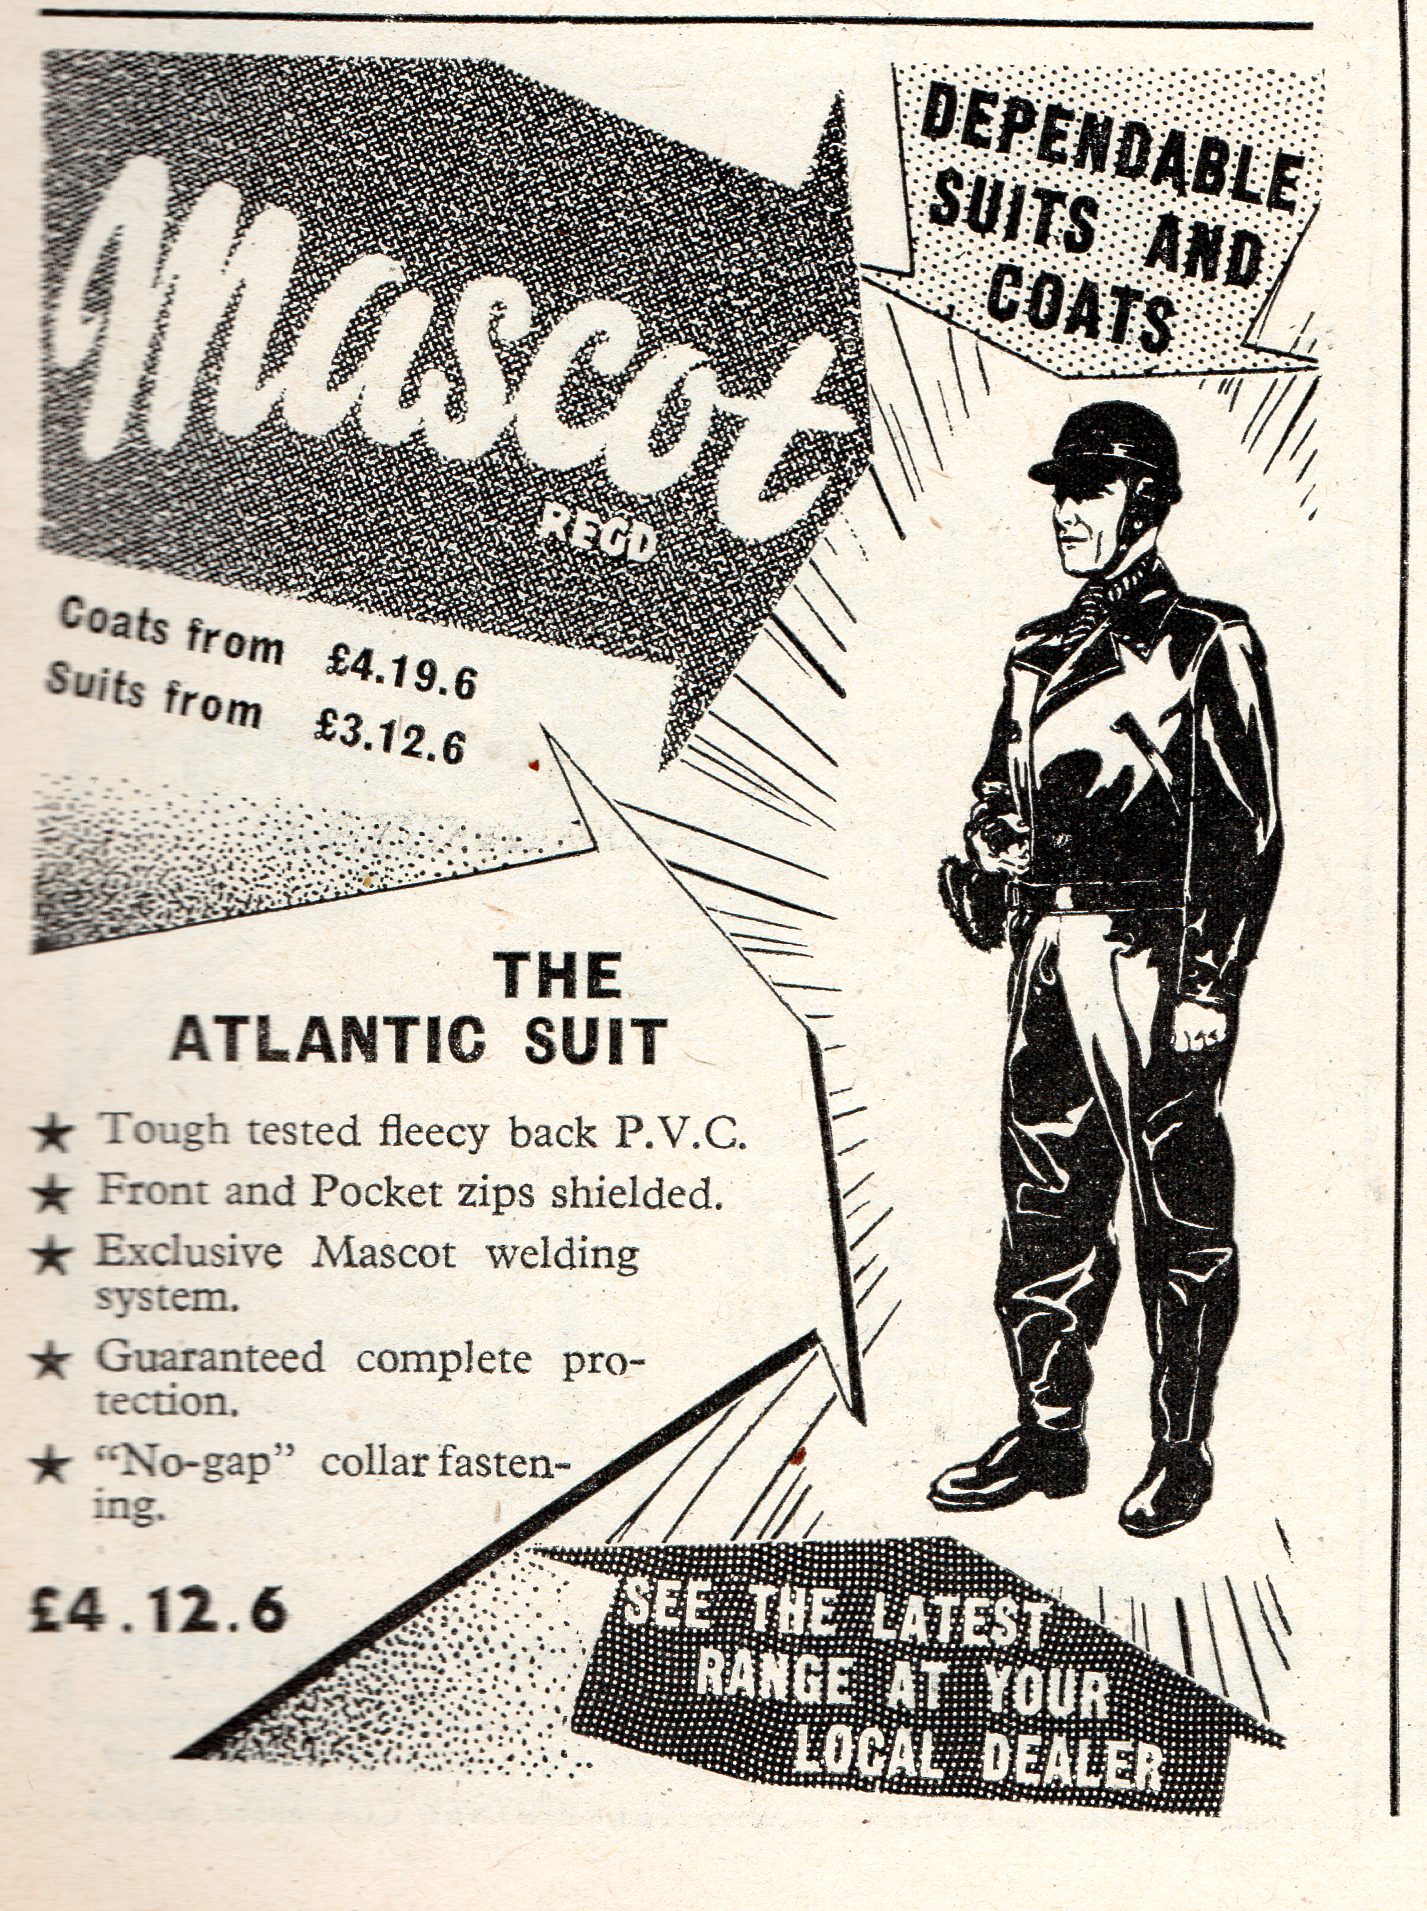 Atlantic suit 1958